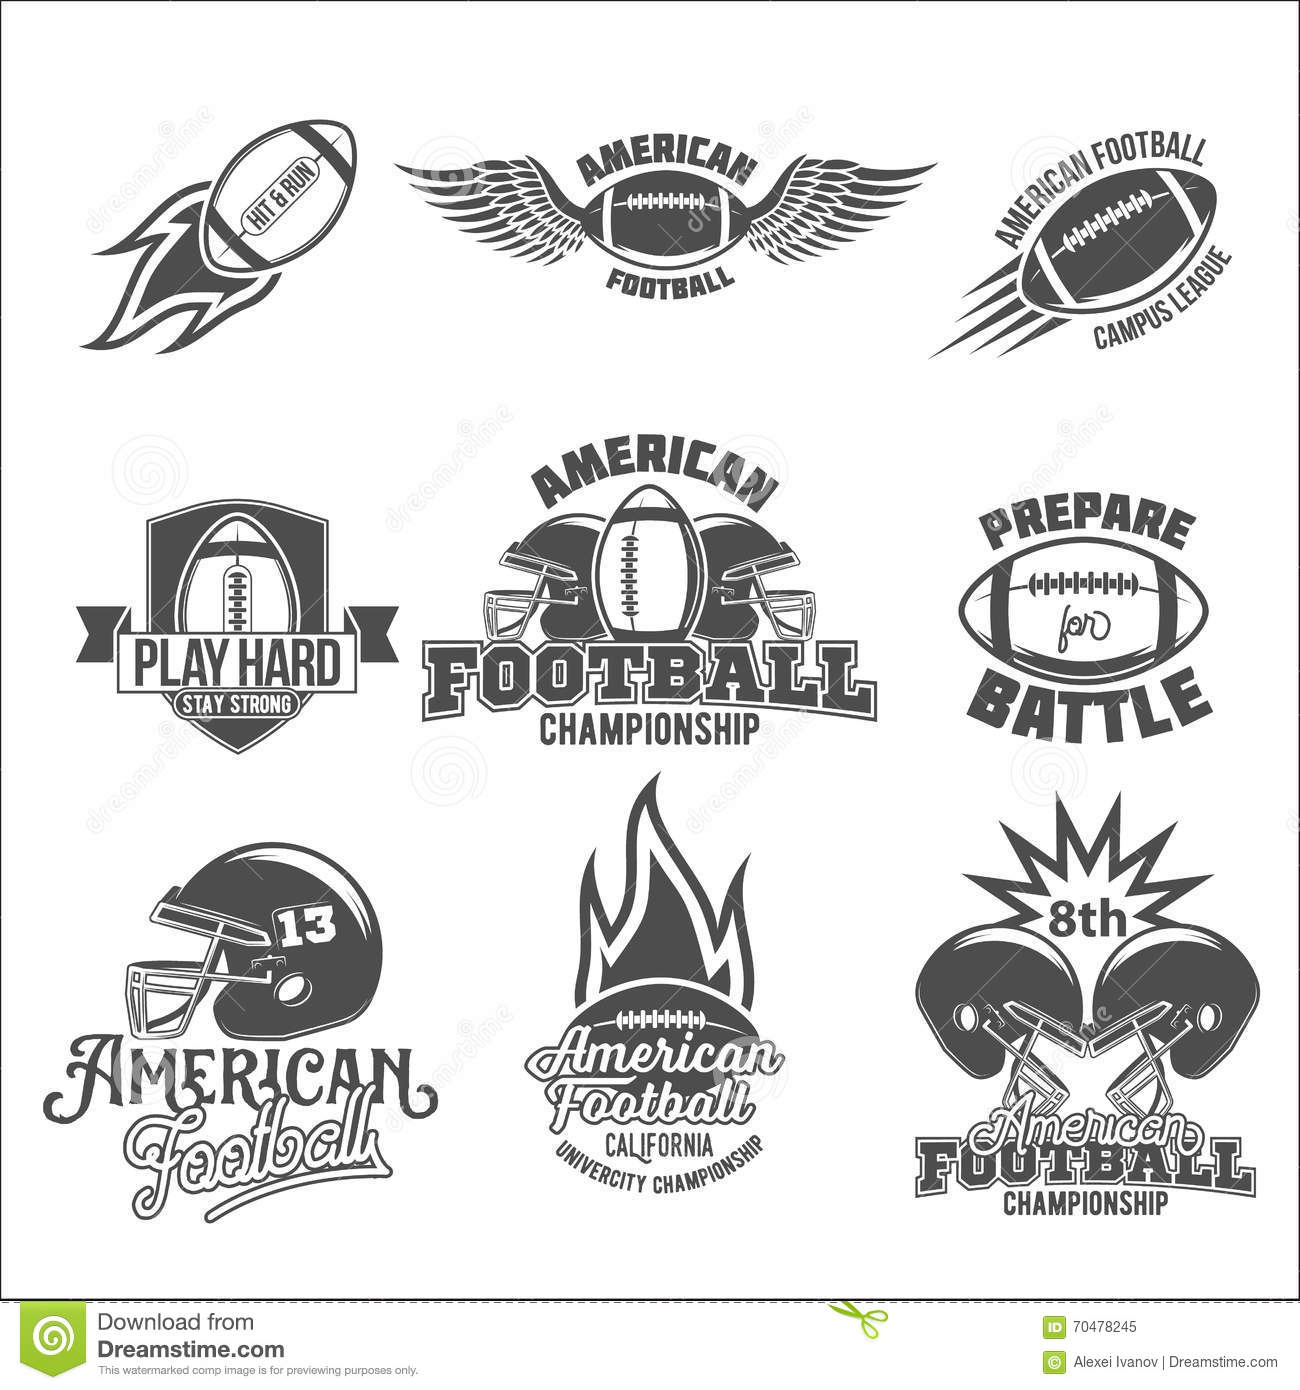 Ensemble de labels de logo de football américain